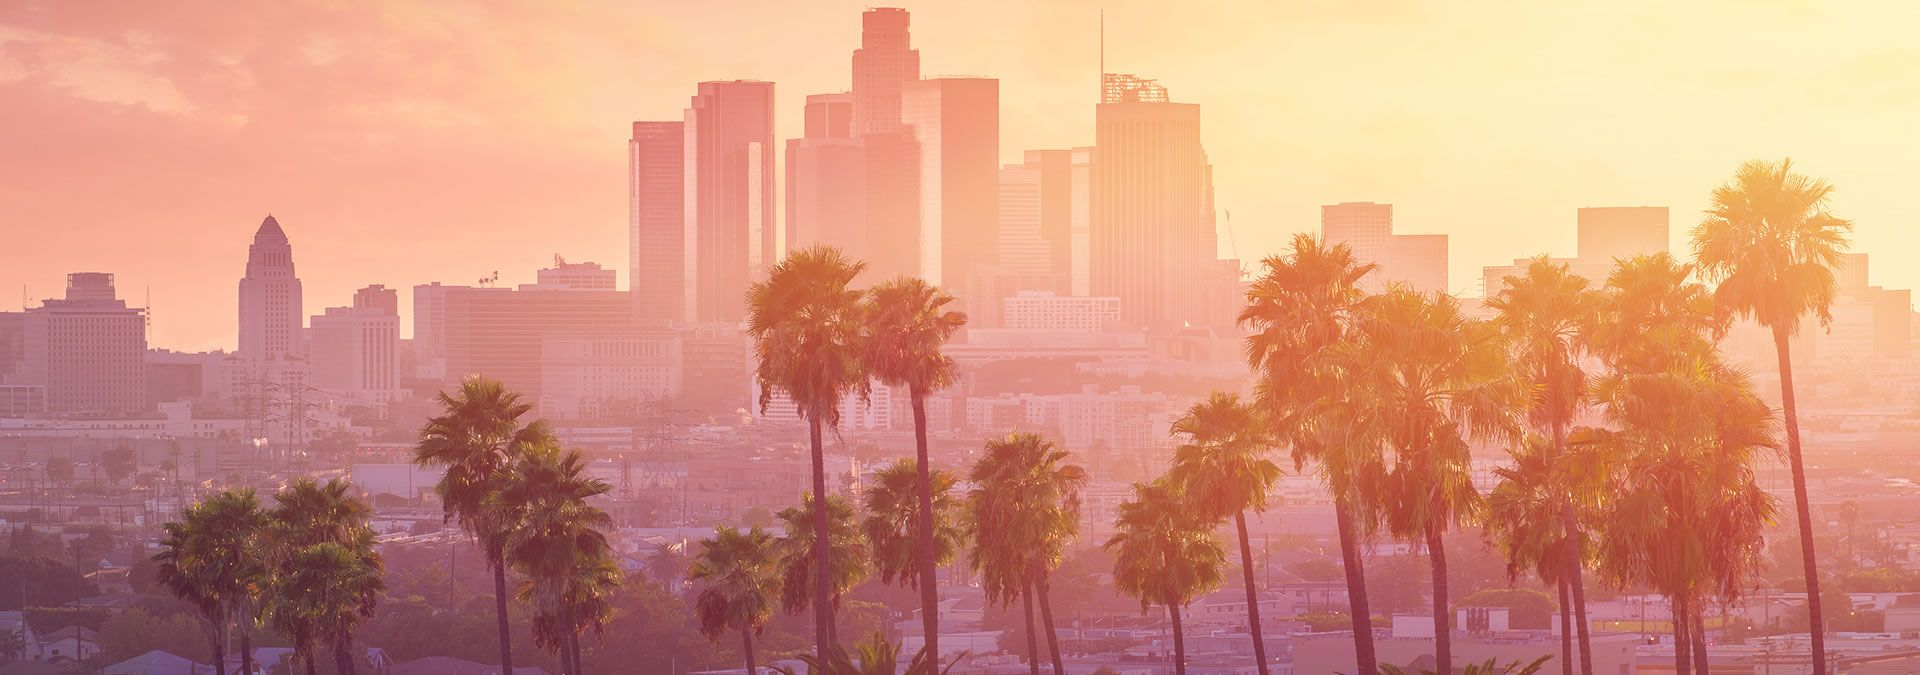 Every Person Wants Bother Free Journey On Their Trip For All They Searching Well Cost And Easy Parking Space For Their V Los Angeles Vacation Los Angeles Trip